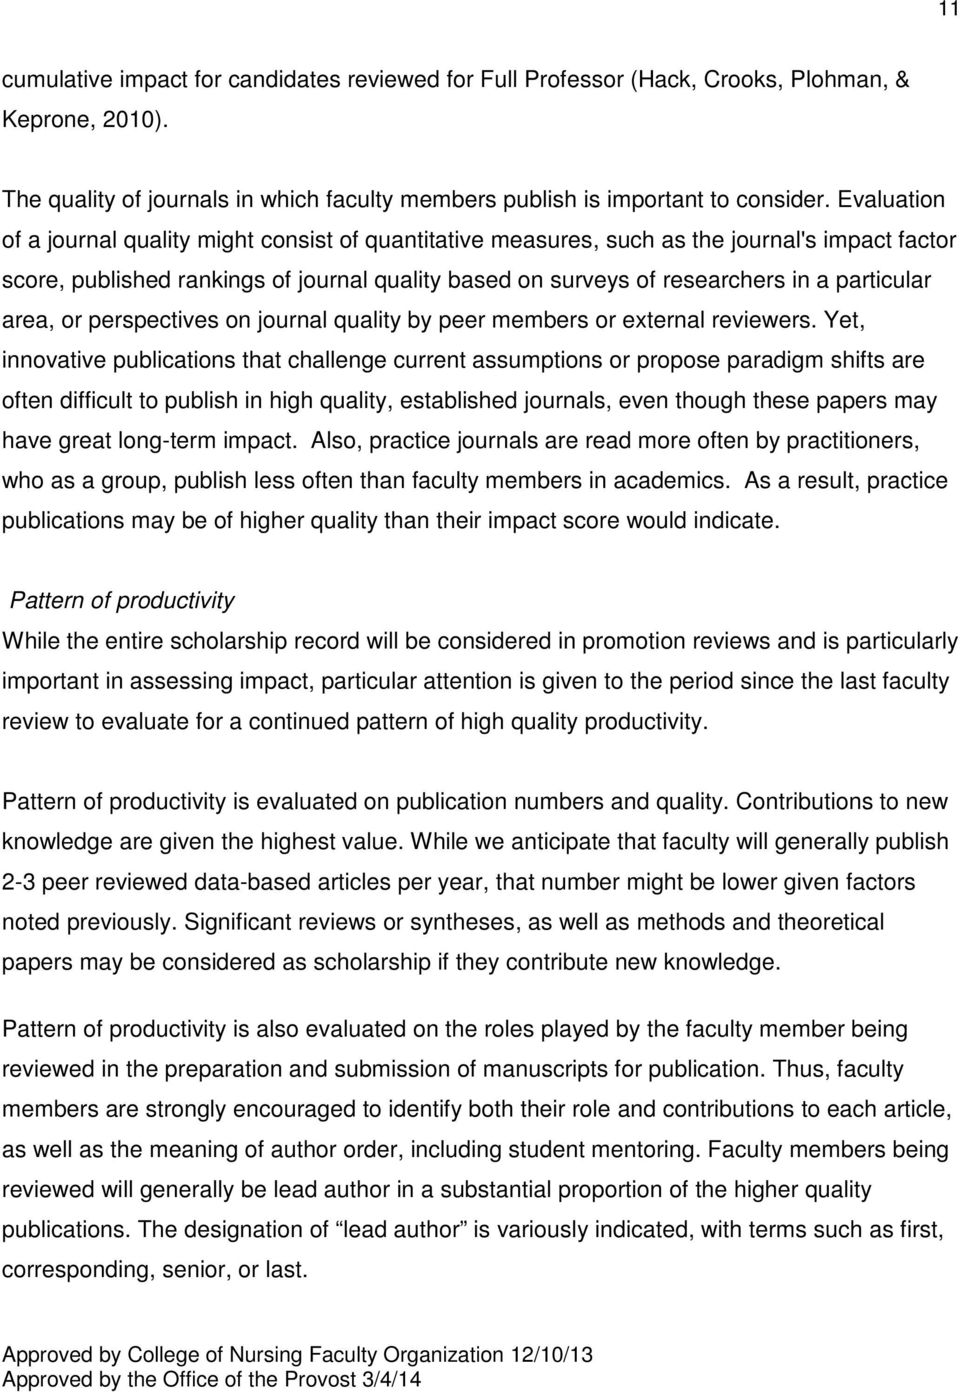 particular area, or perspectives on journal quality by peer members or external reviewers.